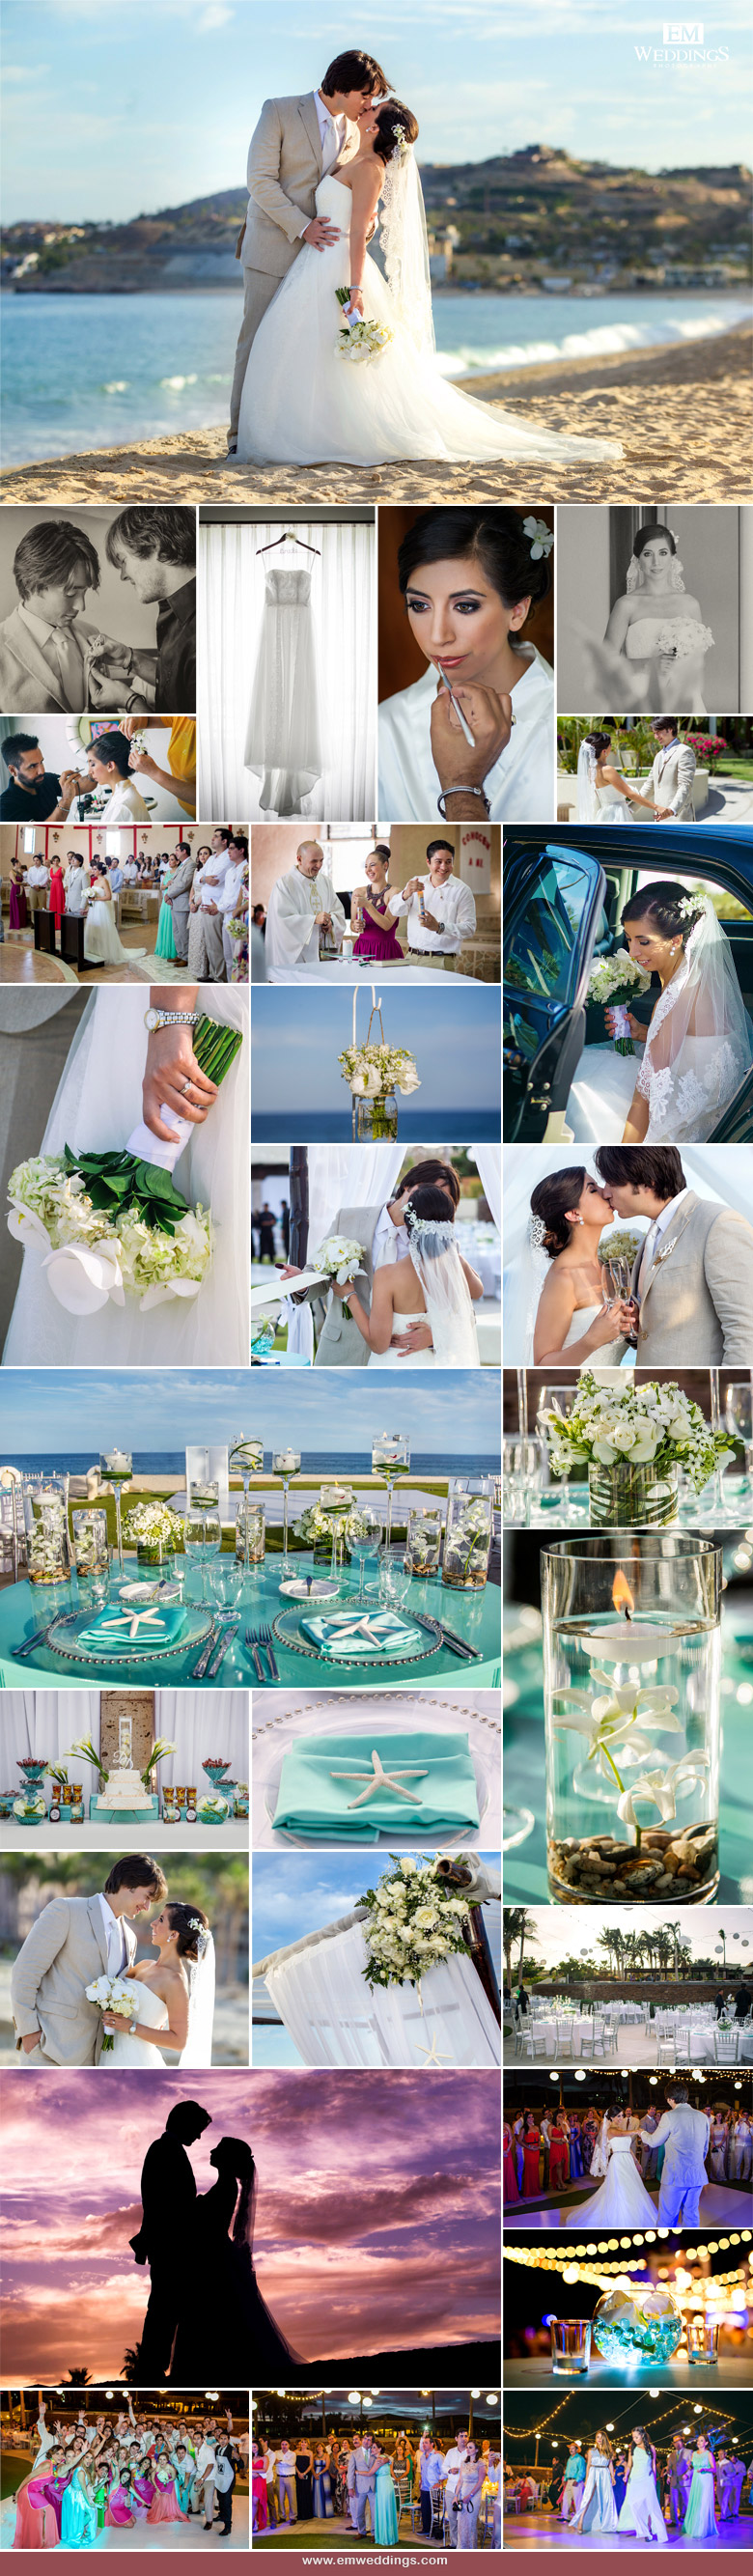 Home Page 11 of 20 Los Cabos Wedding Photographer